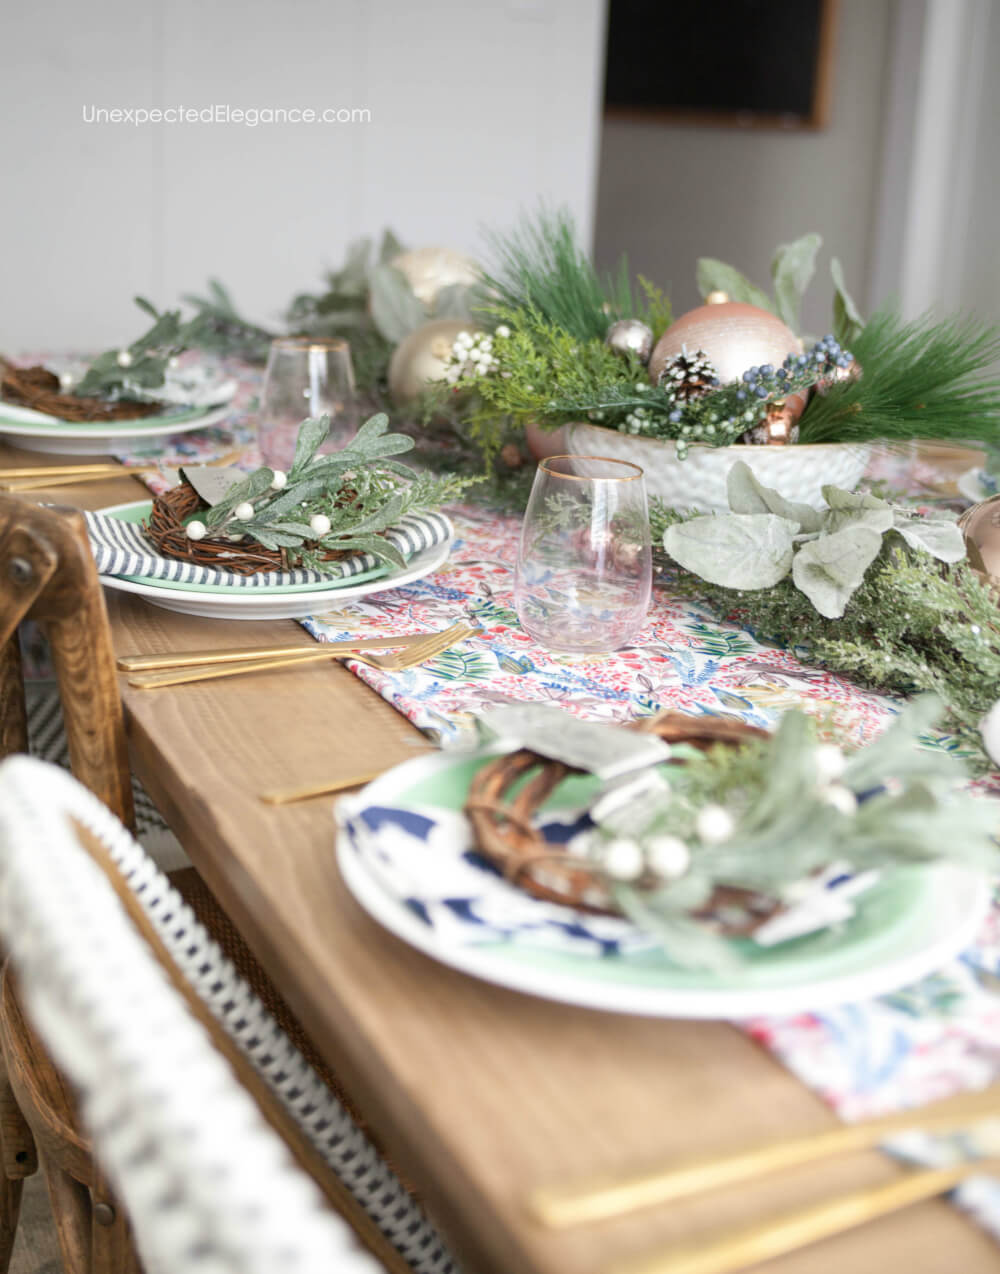 Here's a fun and festive holiday tablescape that super easy to put together.  Check out the non-traditional colors and get tutorial for a mini wreath your guests can take home.